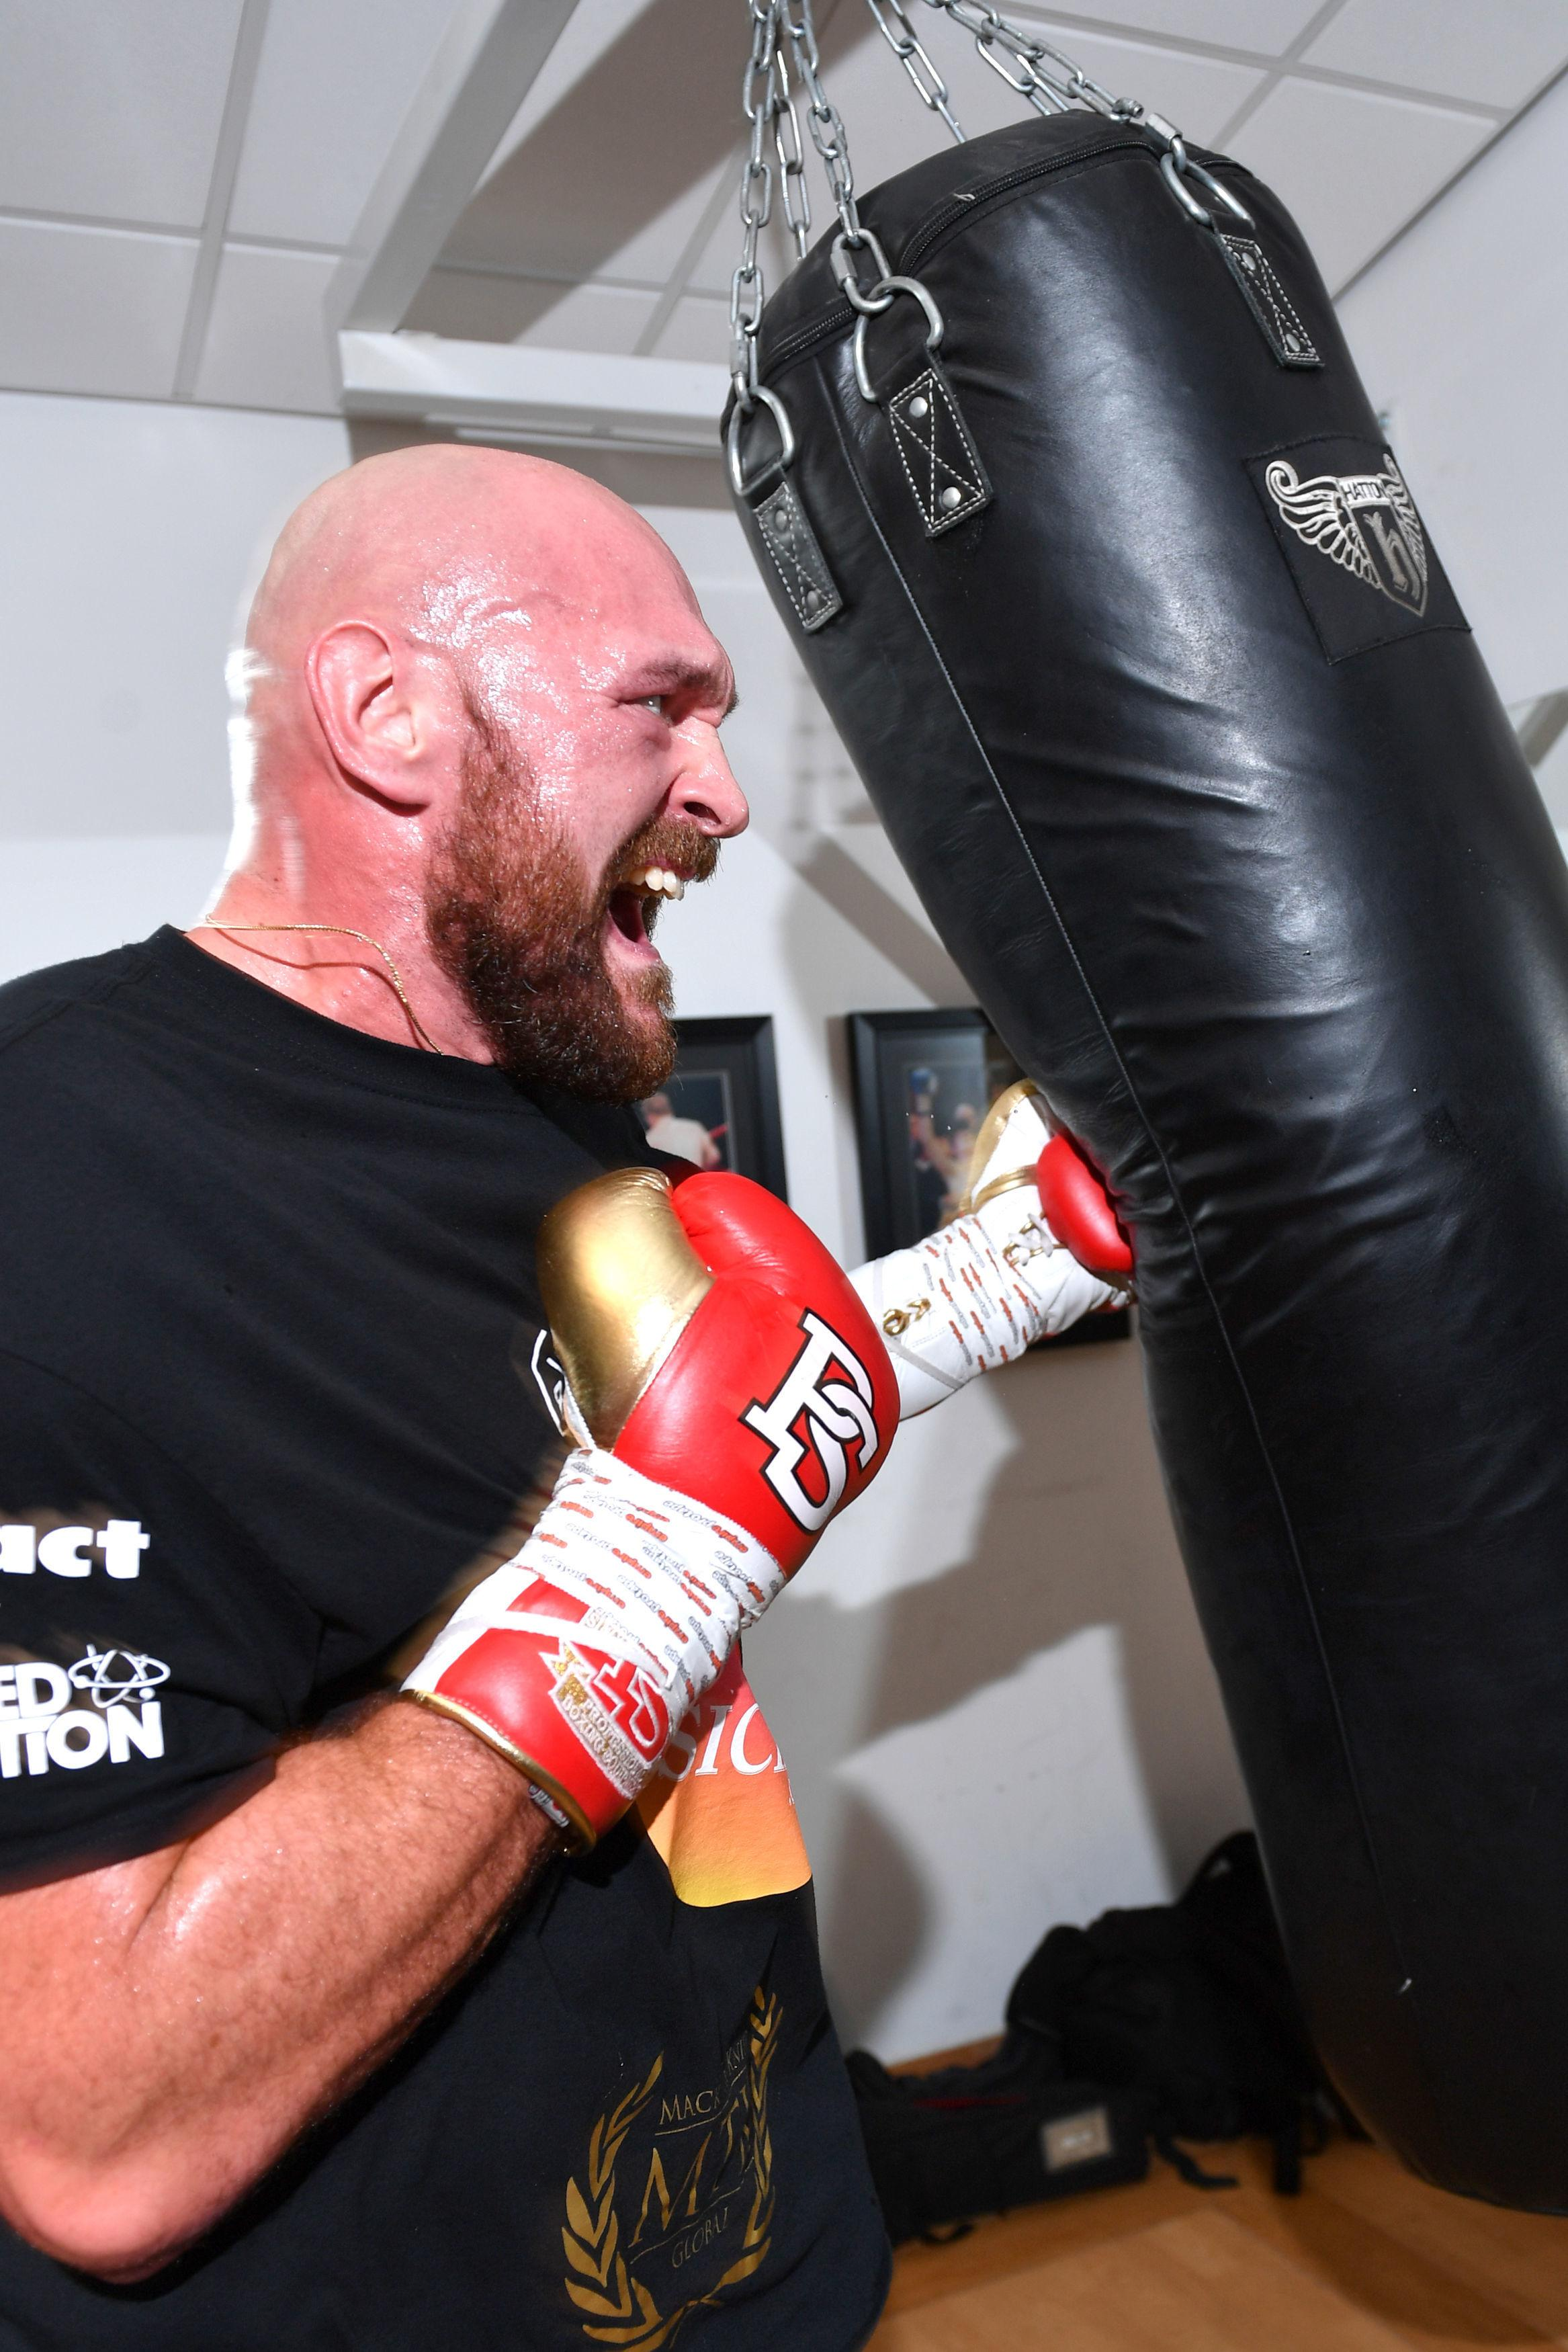 Fury claims he is preparing to face Deontay Wolder in a world title bout in December